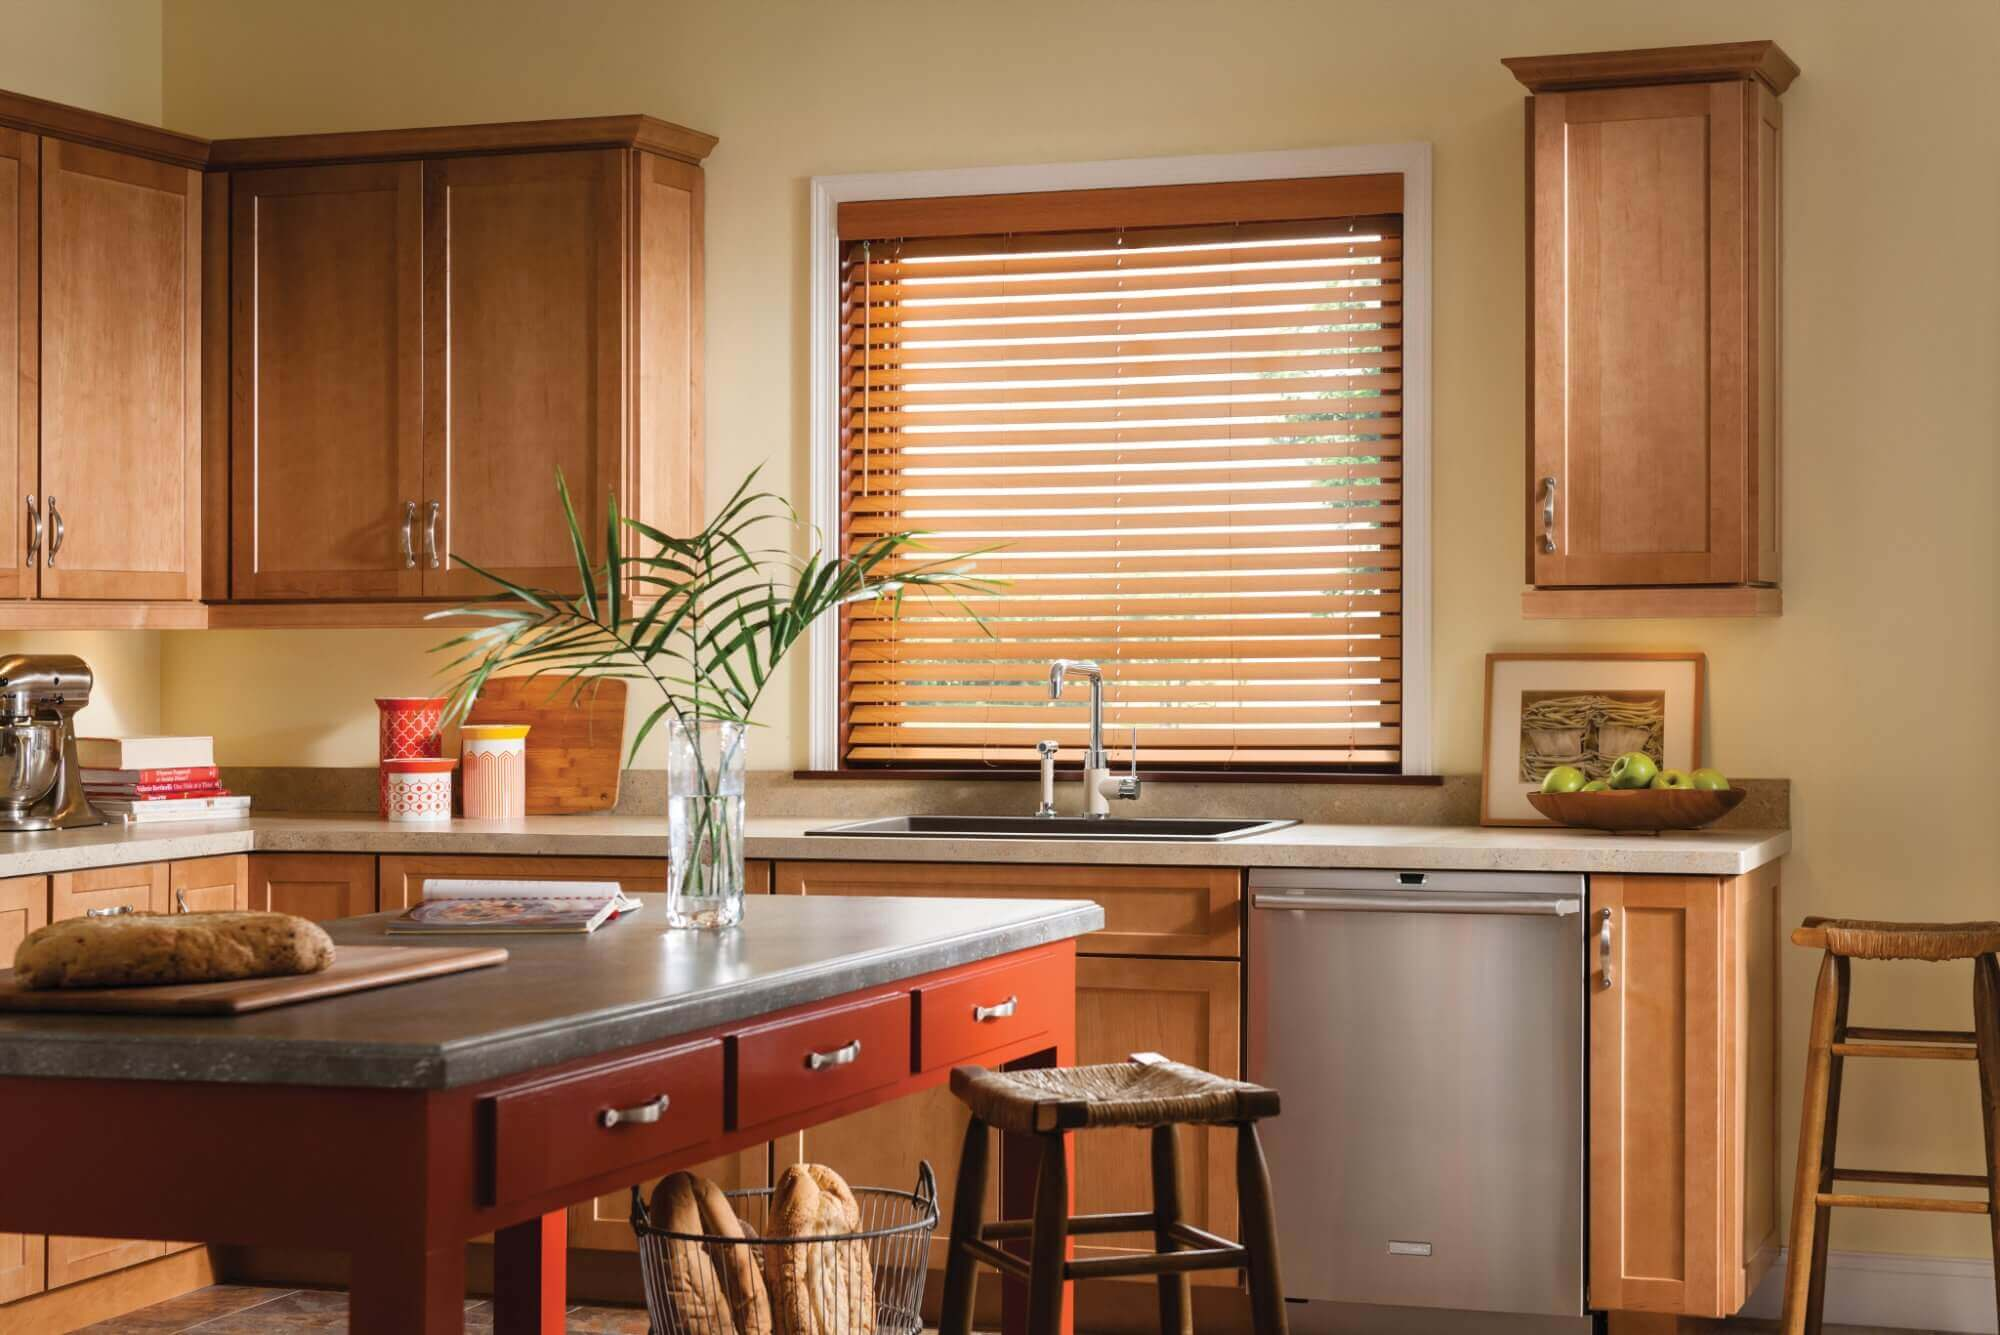 Consider the placement of your window treatments in the kitchen so they can resist splashes, moisture, or humidity.